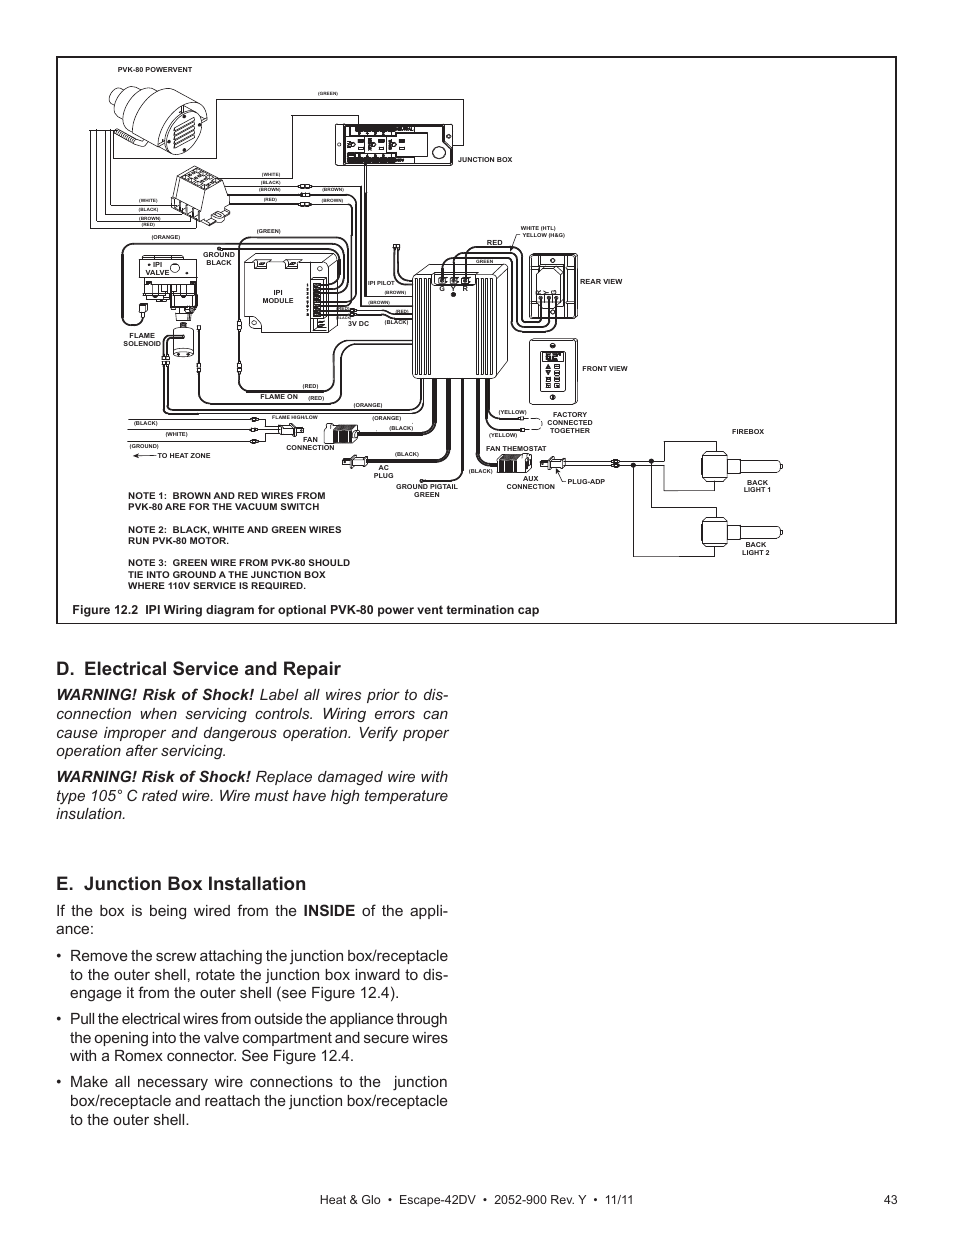 hight resolution of d electrical service and repair e junction box installation heat glo fireplace heat glo escape 42dv user manual page 43 61